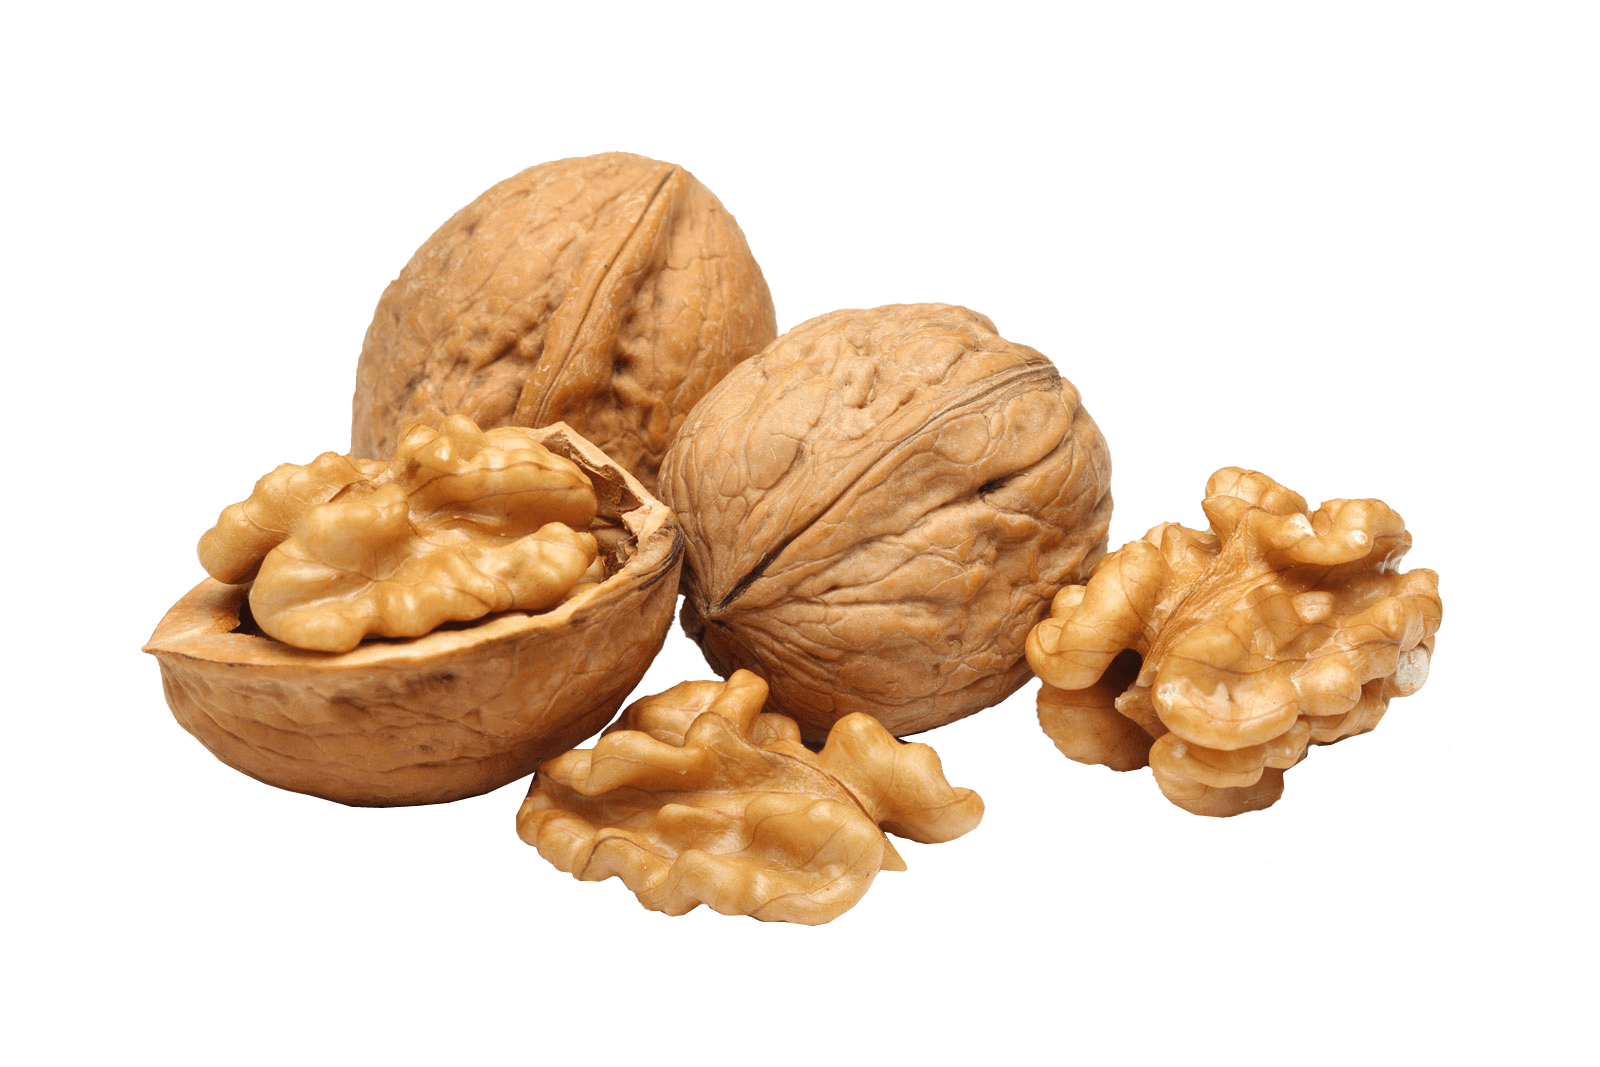 Walnut group transparent png. Clipart food nuts